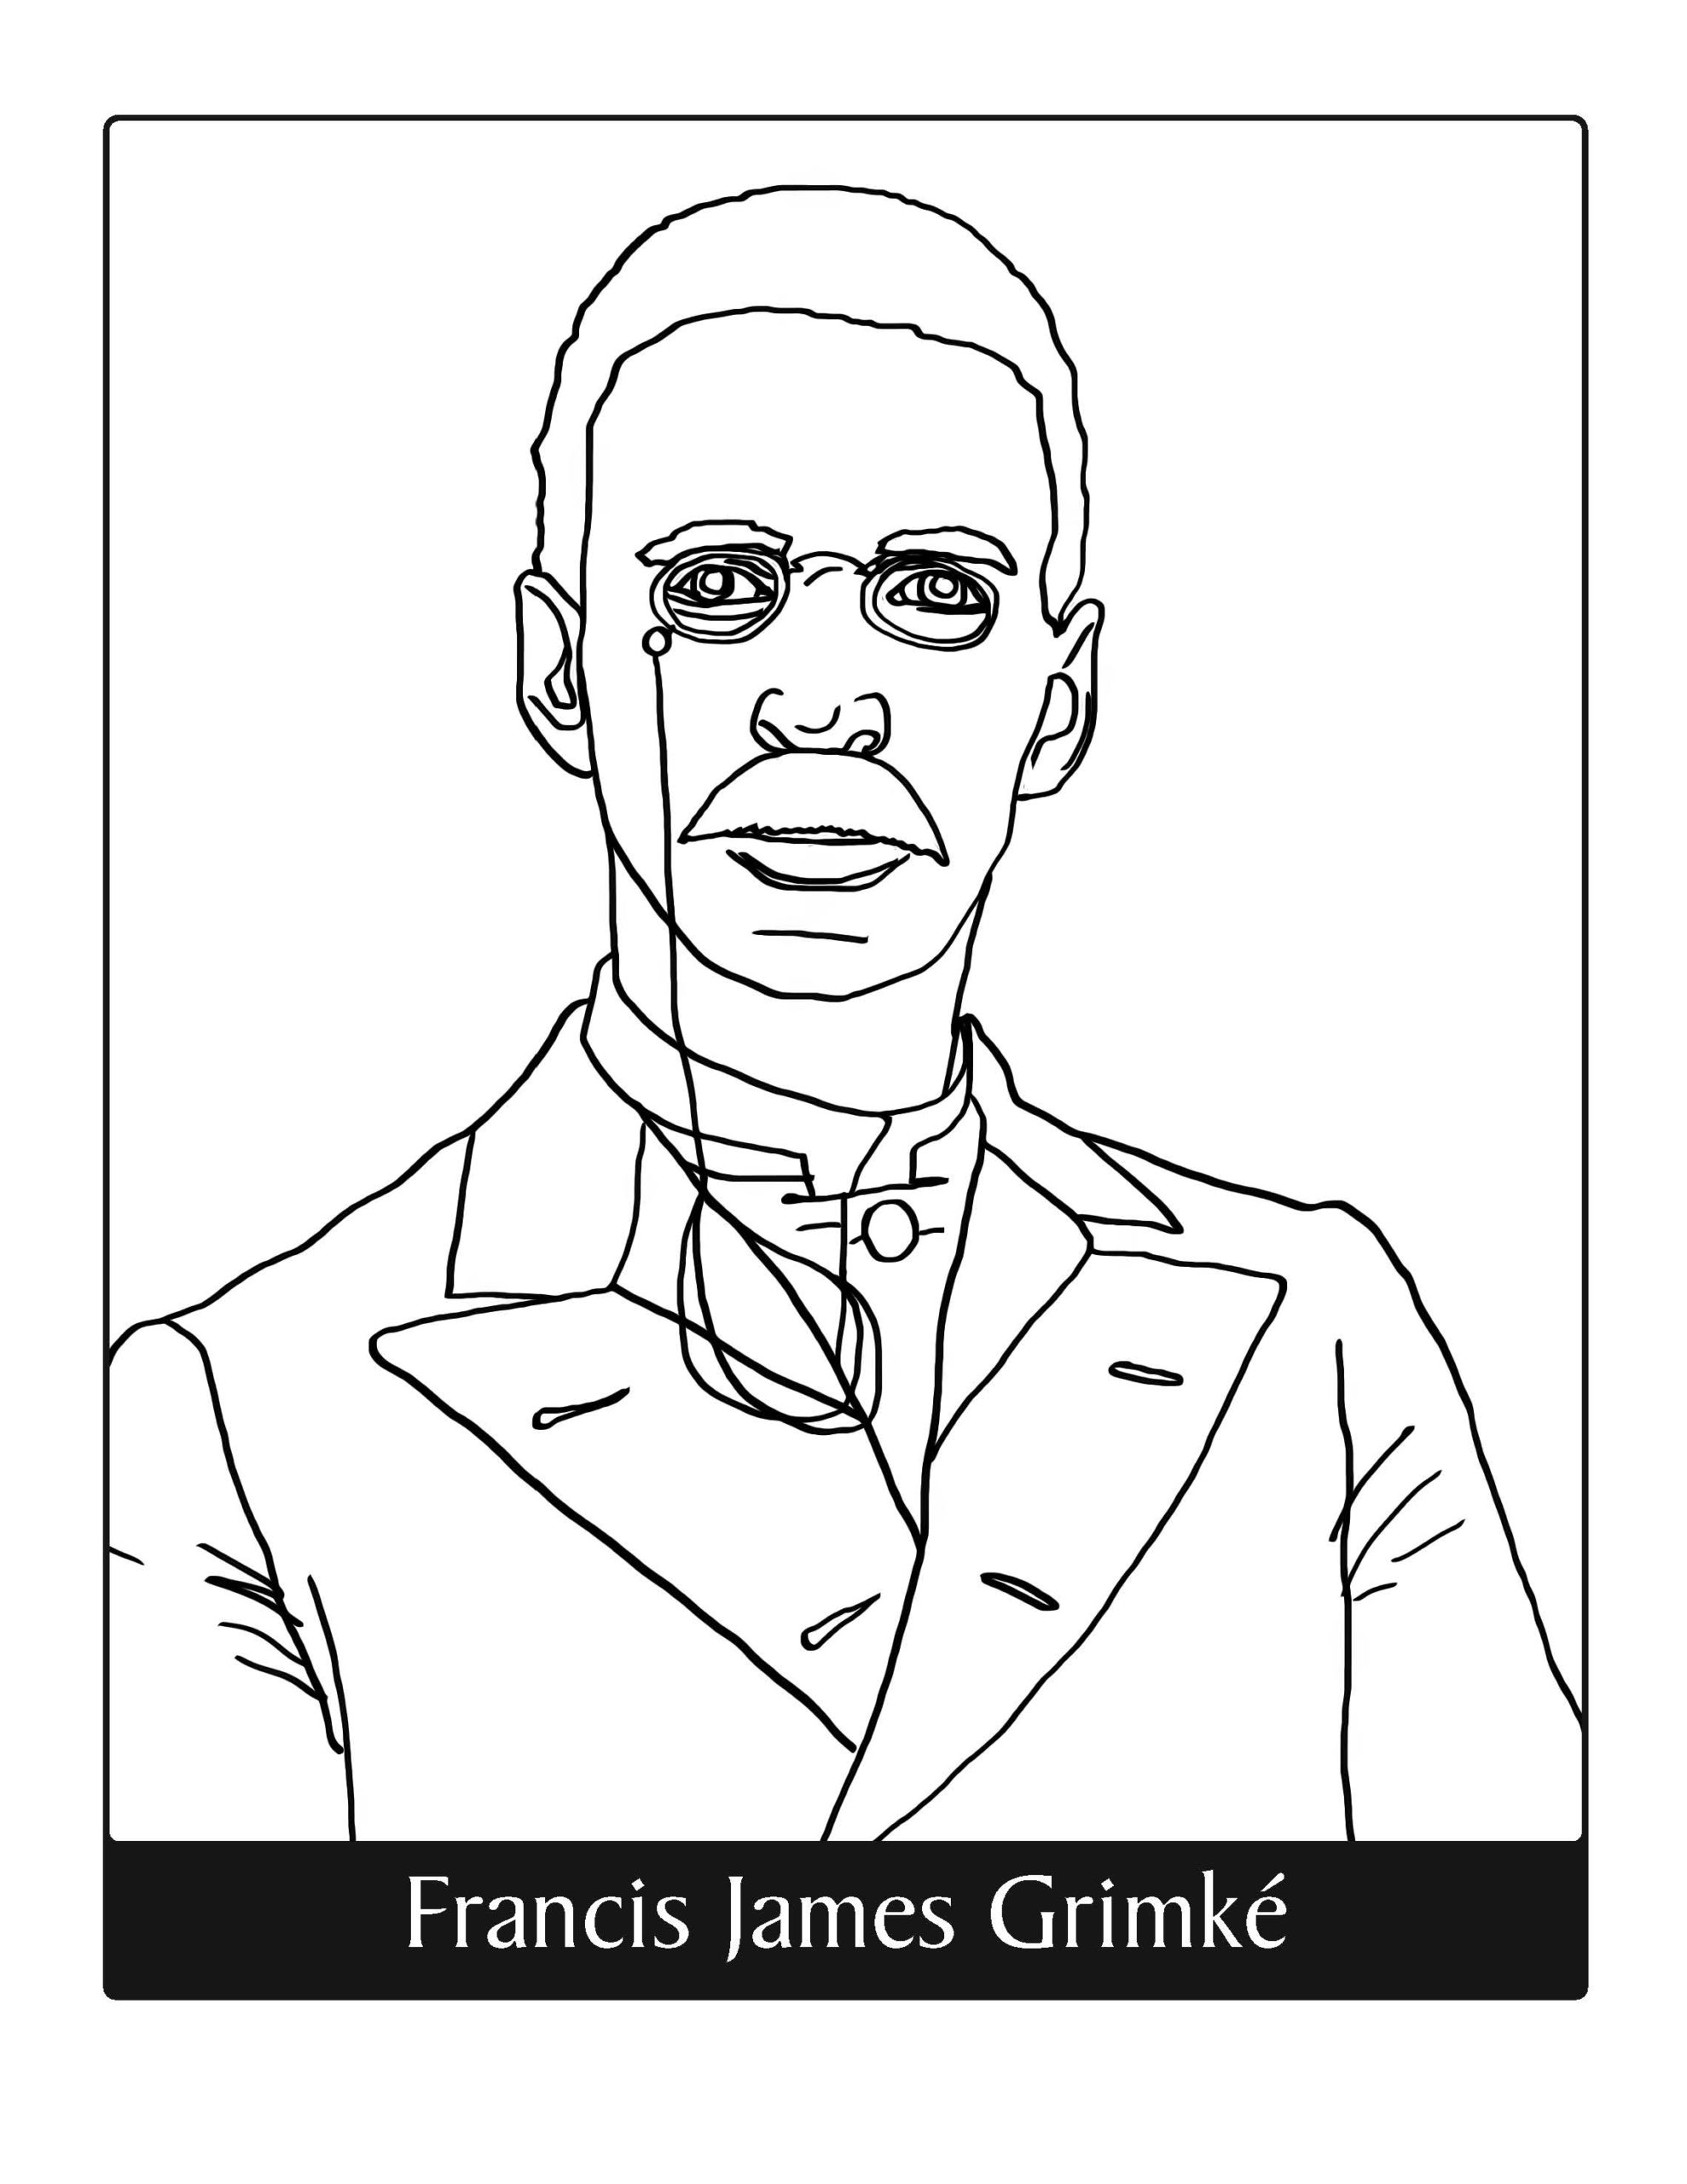 30 Free Coloring Pages To Celebrate Black Faith Leaders